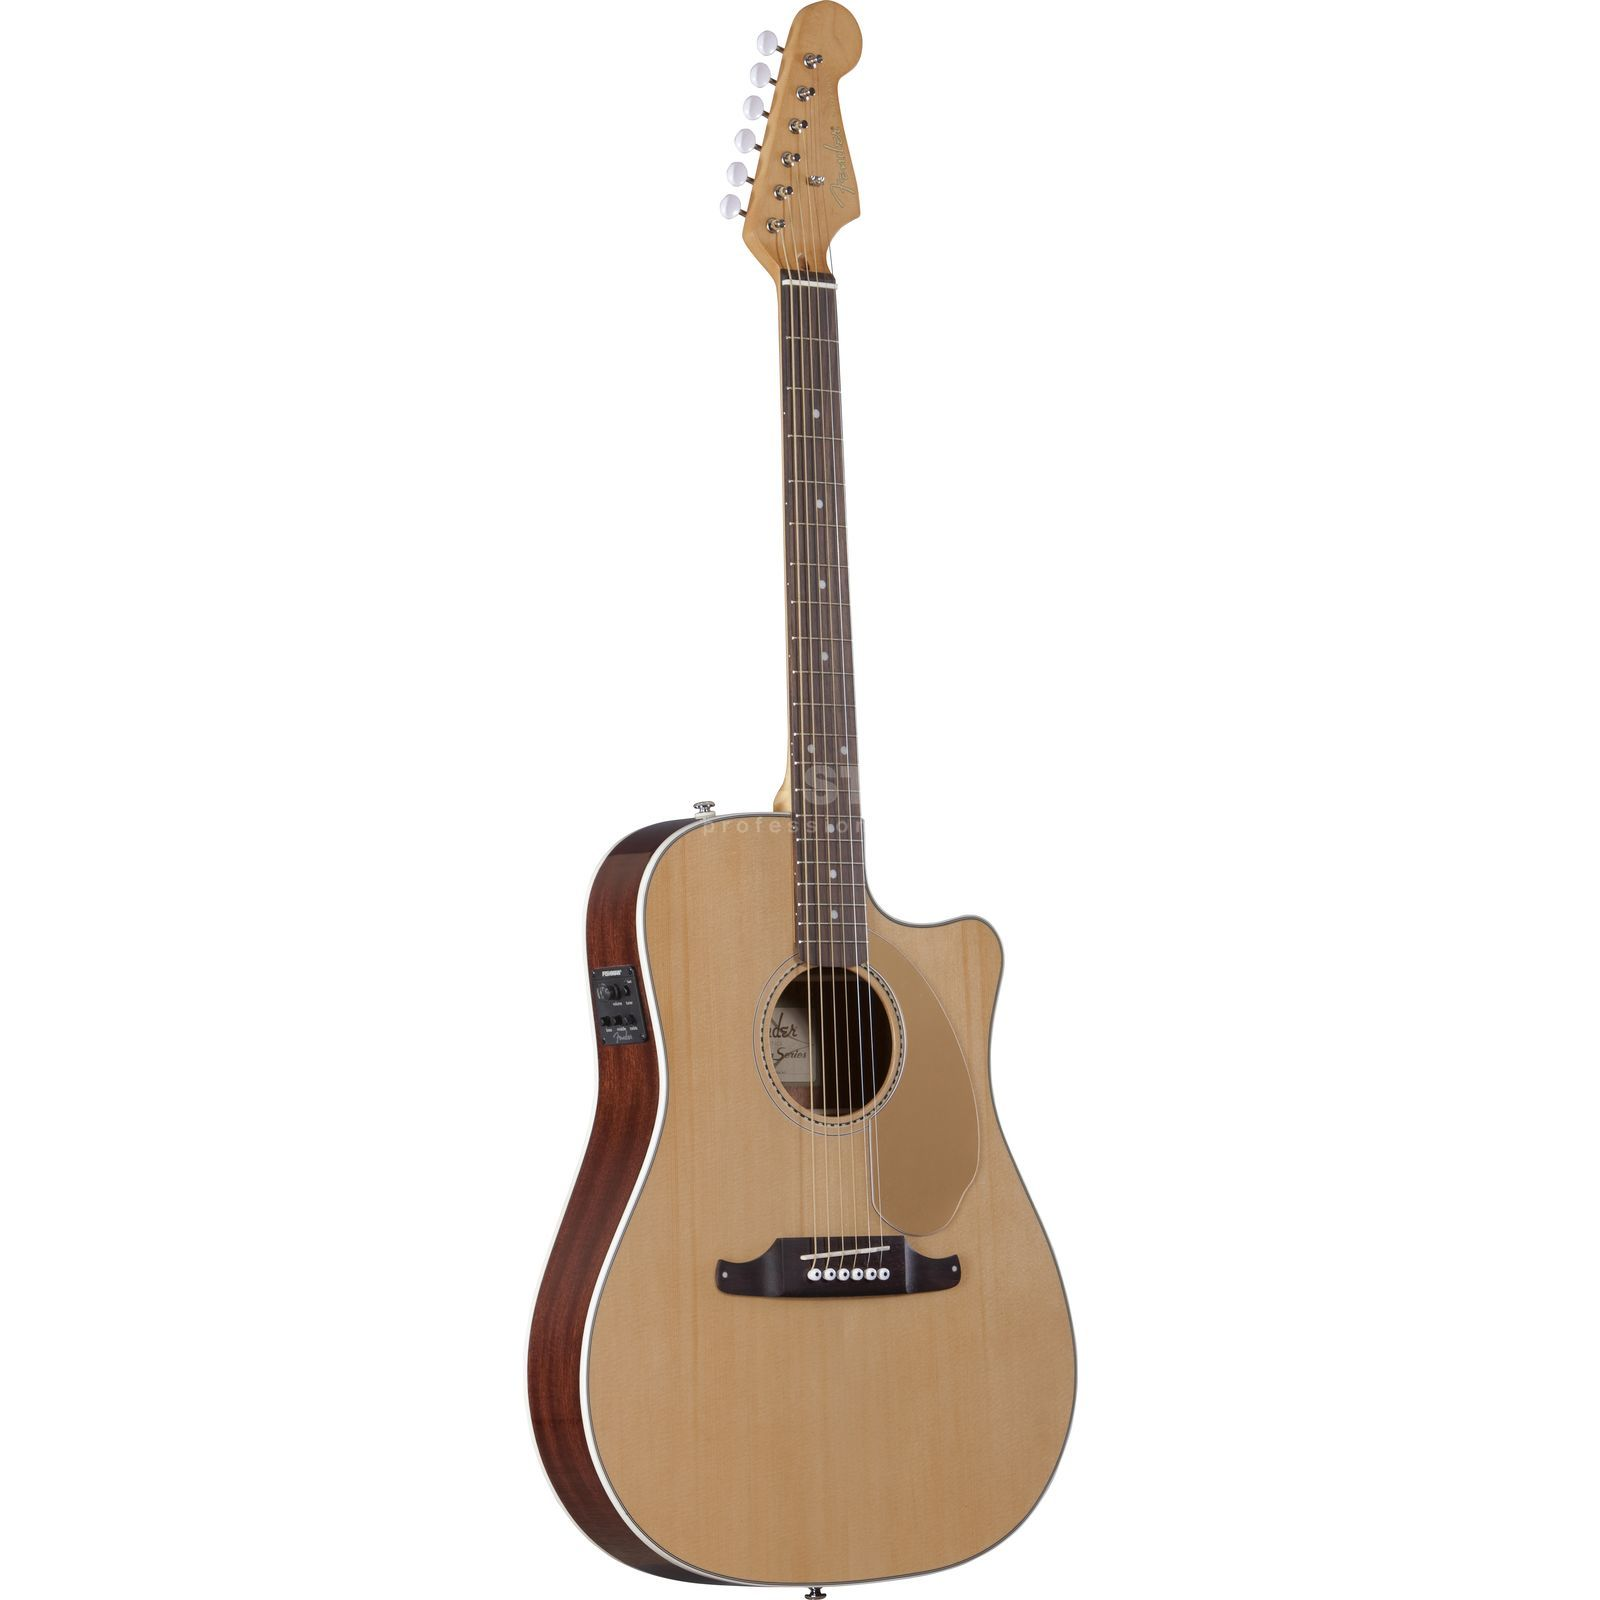 Fender Sonoran SCE Thinline Natural Solid top, Fishman Isys III Produktbild